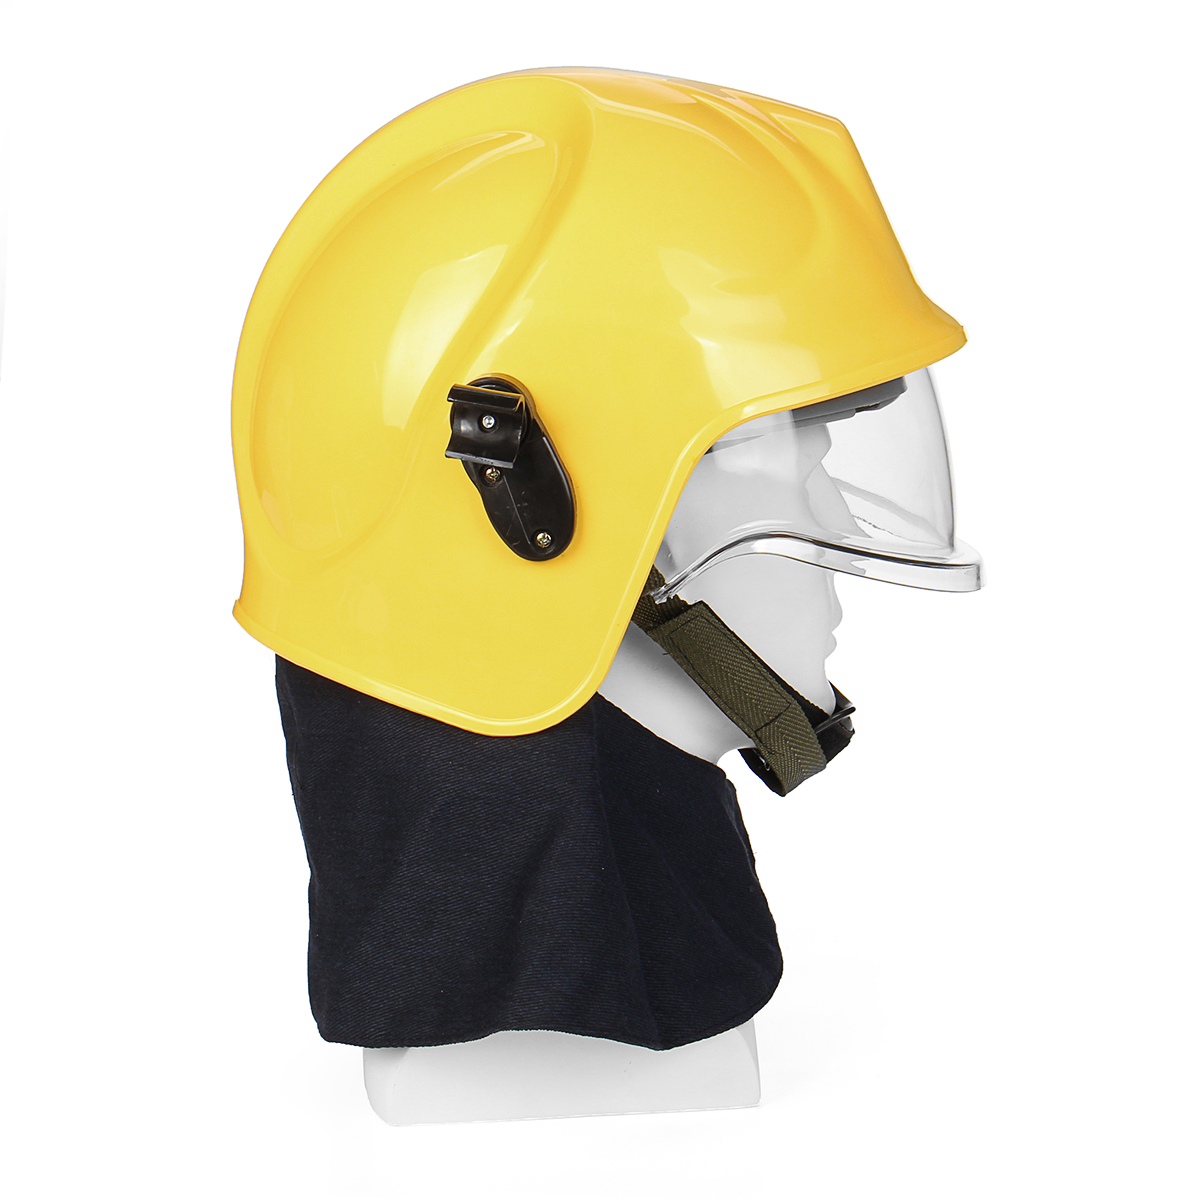 Red Yellow Pro Rescue Helmet Fire Fighter Protective Ultra Safety Head Protector